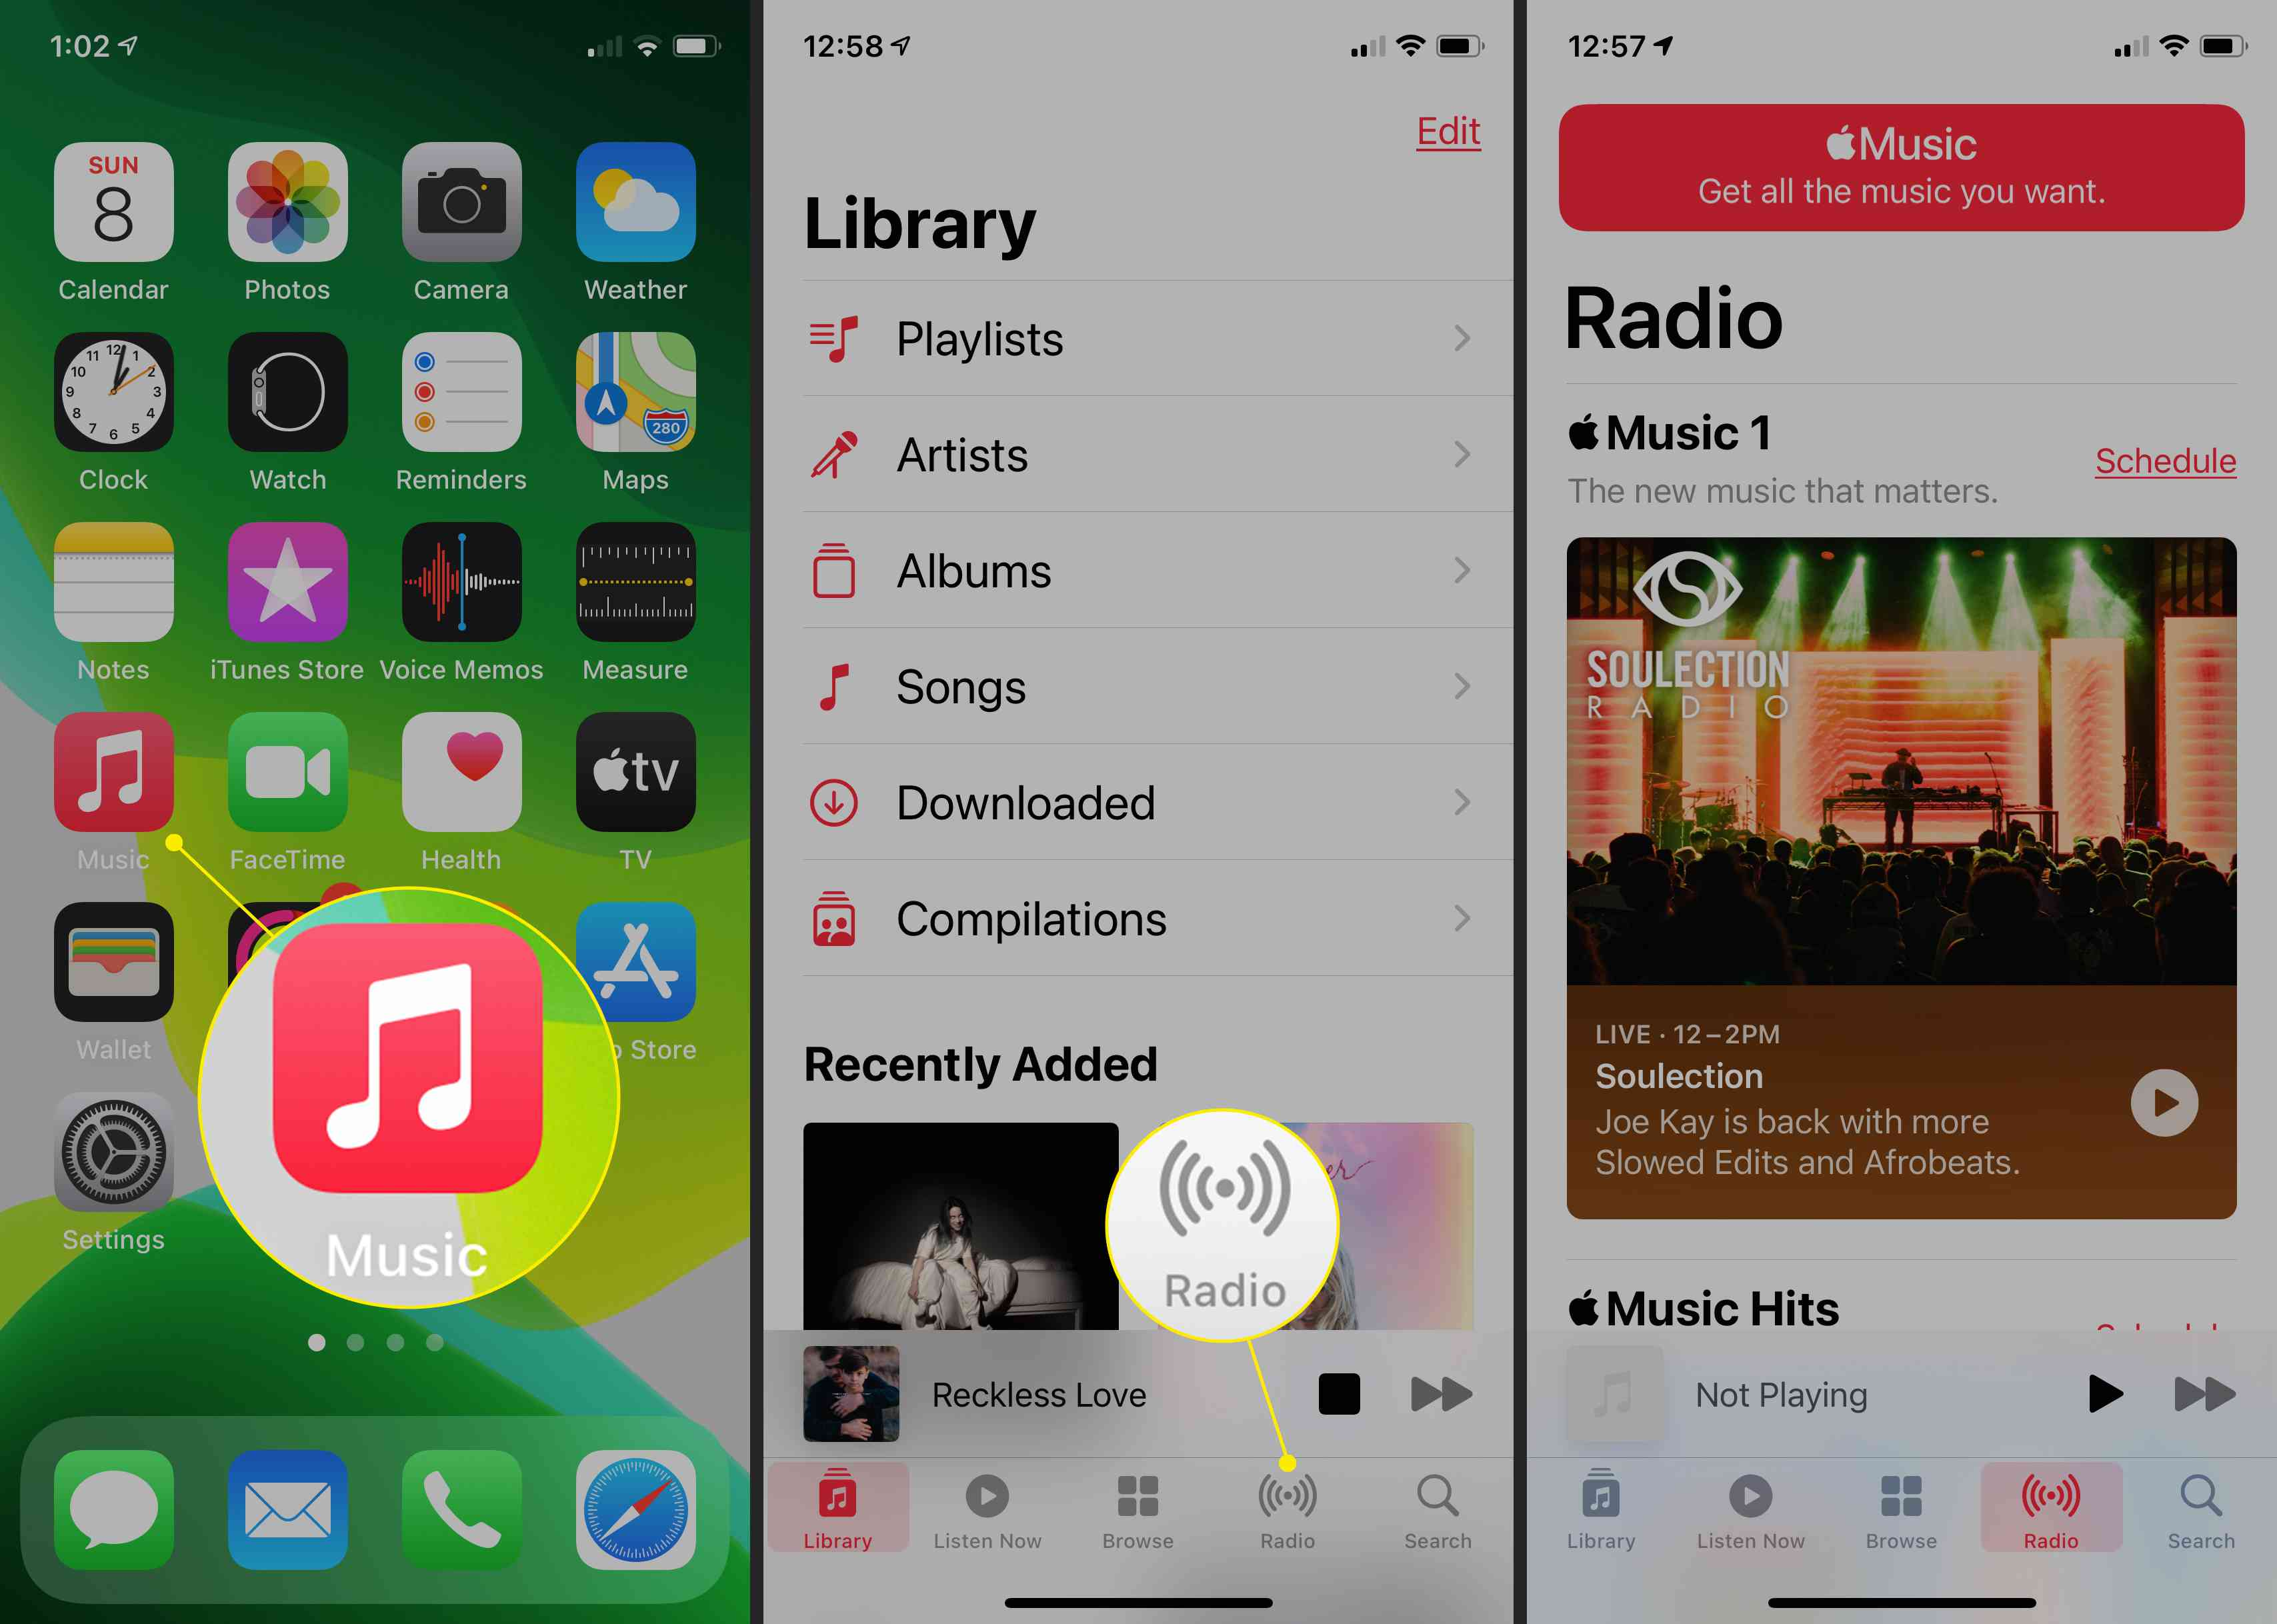 The Music app in iOS with Radio highlighted